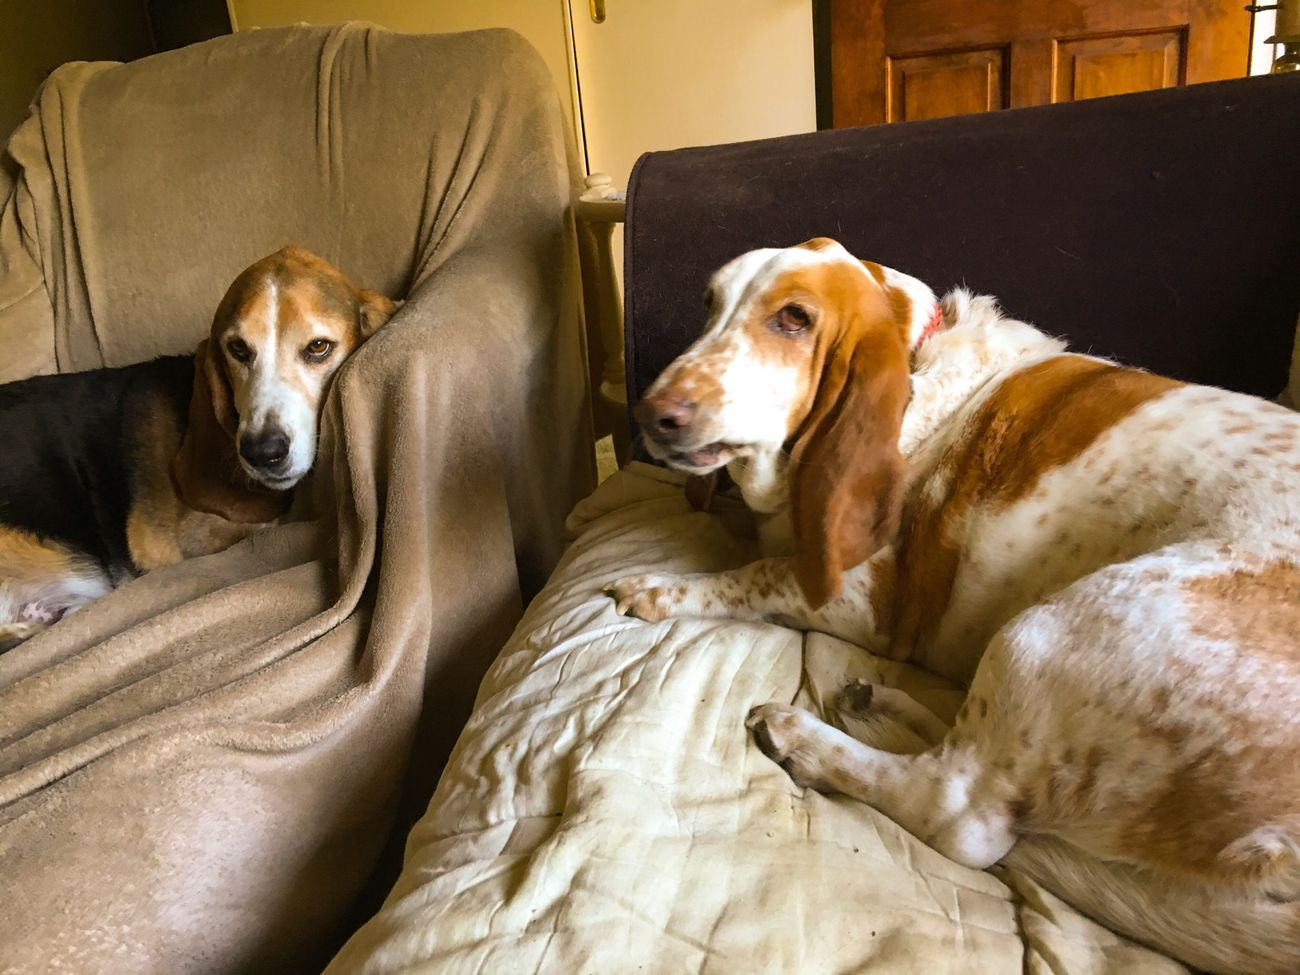 Watching TV Check This Out Enjoying Life Hanging Out Relaxing Rescuedbassethound Myseniorhound Color Photography Posing For The Camera Bassetworld Bassetphotography Bassetmoments Ilovebassethounds Iphonephotography